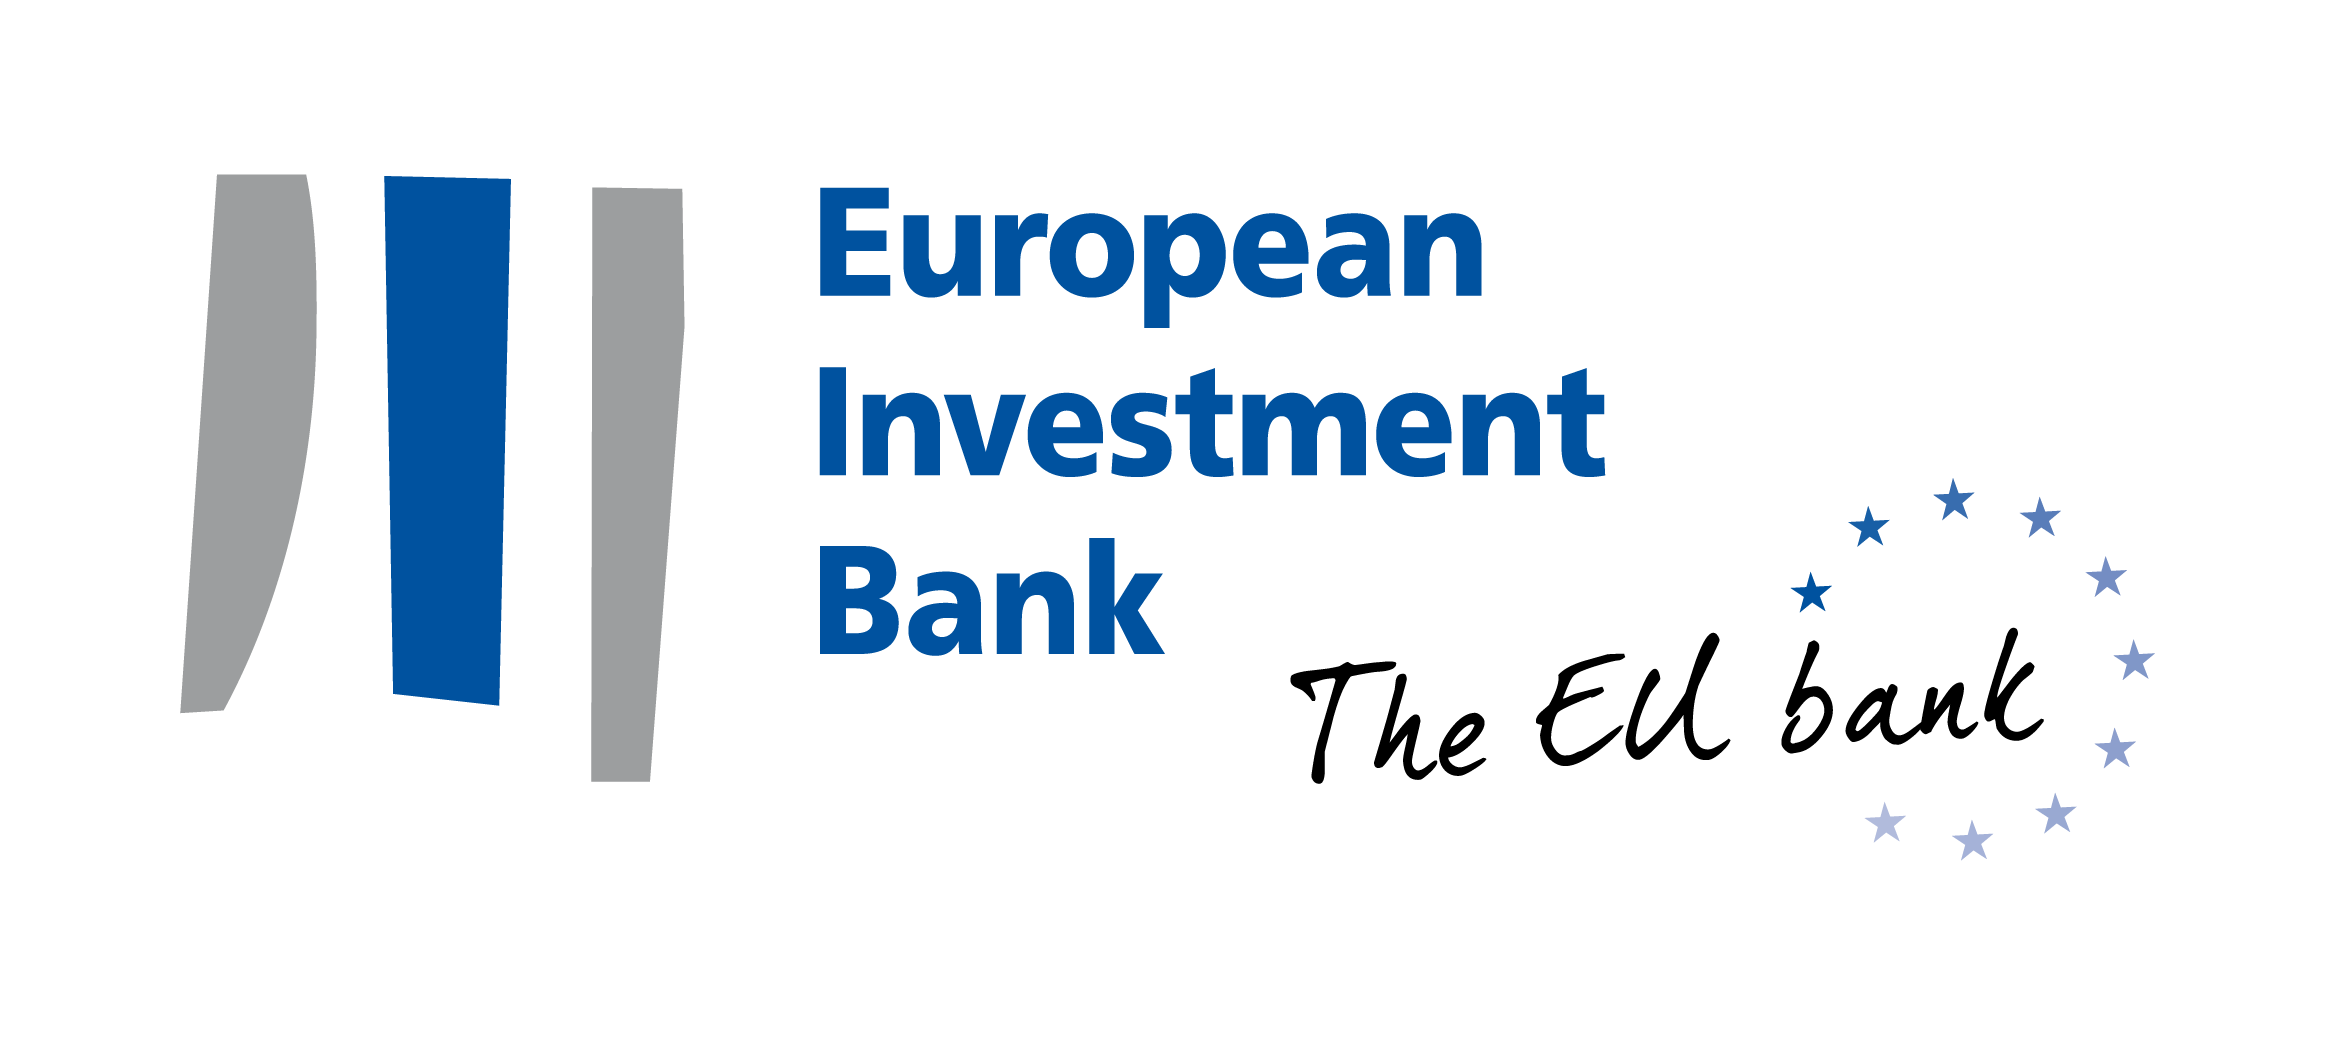 EIB_EU_SLOGAN_B_English_4c